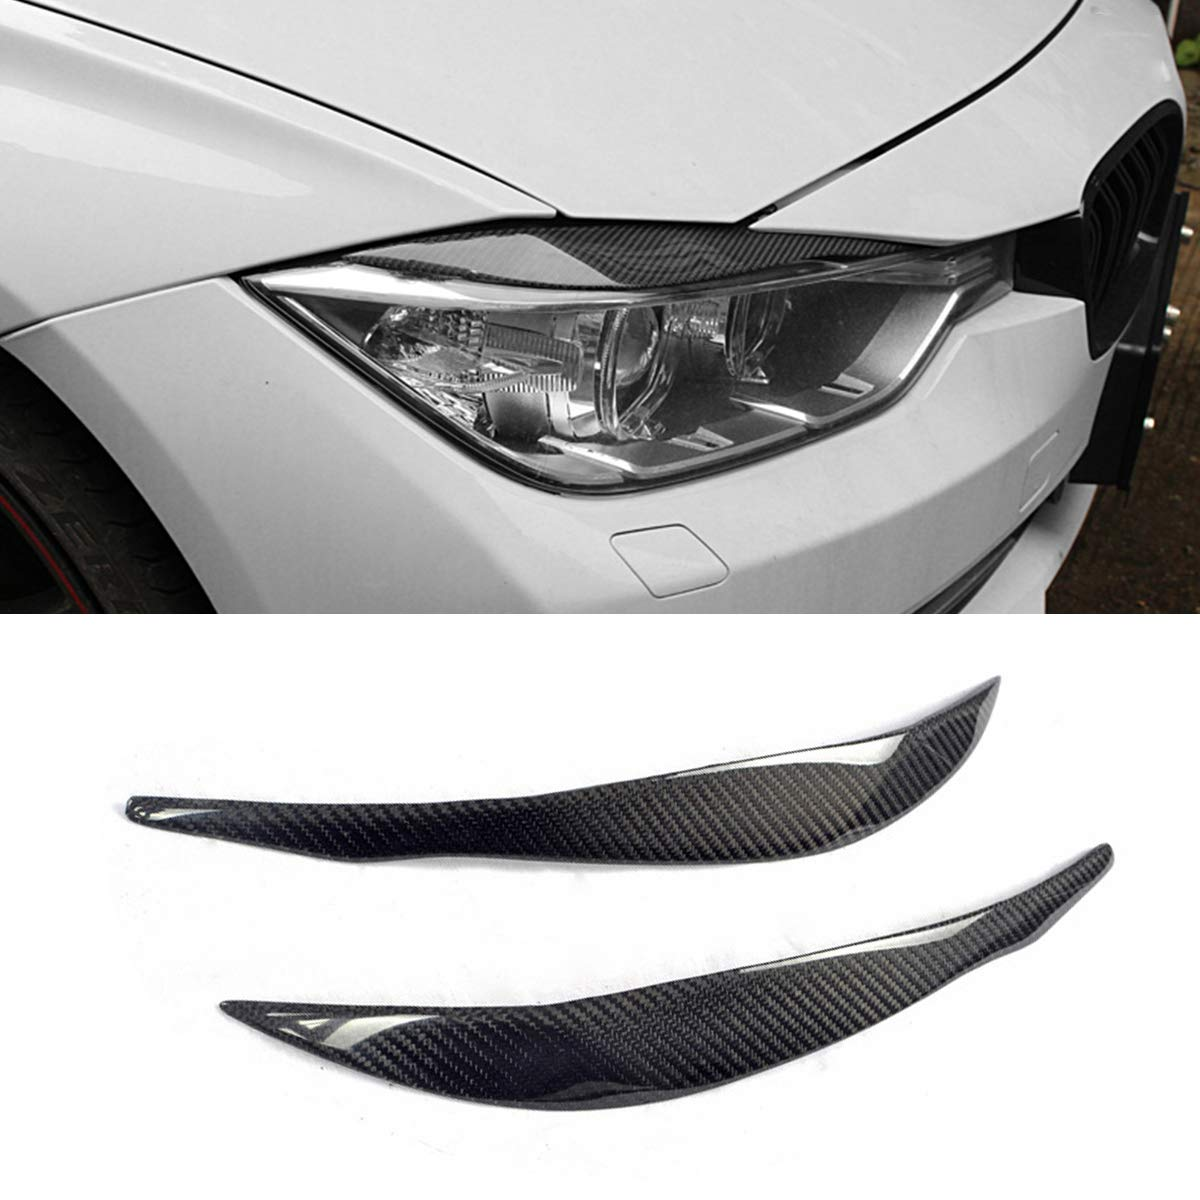 Fandixin F30 Eyebrow, Sport Real Carbon Fiber Headlight EyeLid Cover for BMW 3 Series F30